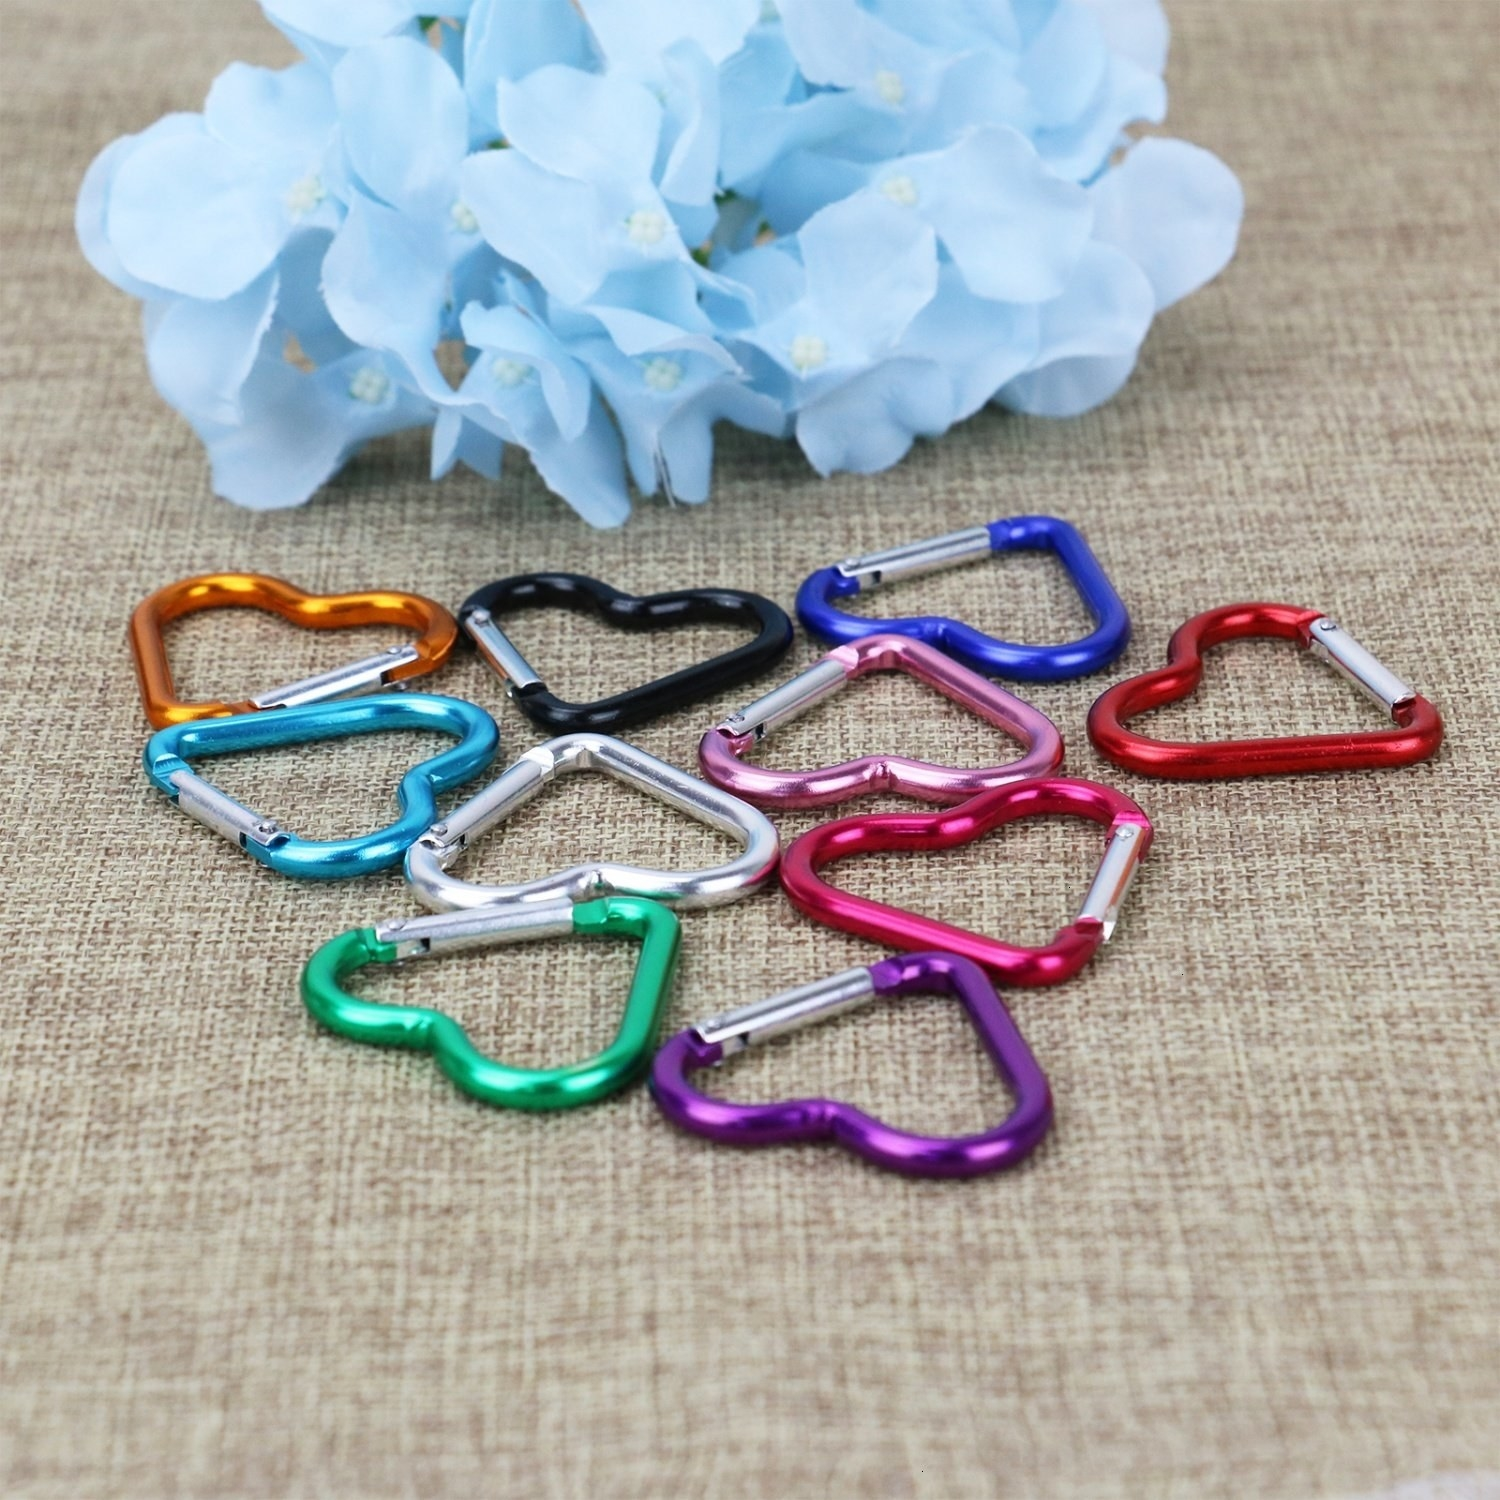 the carabiners in multiple colors